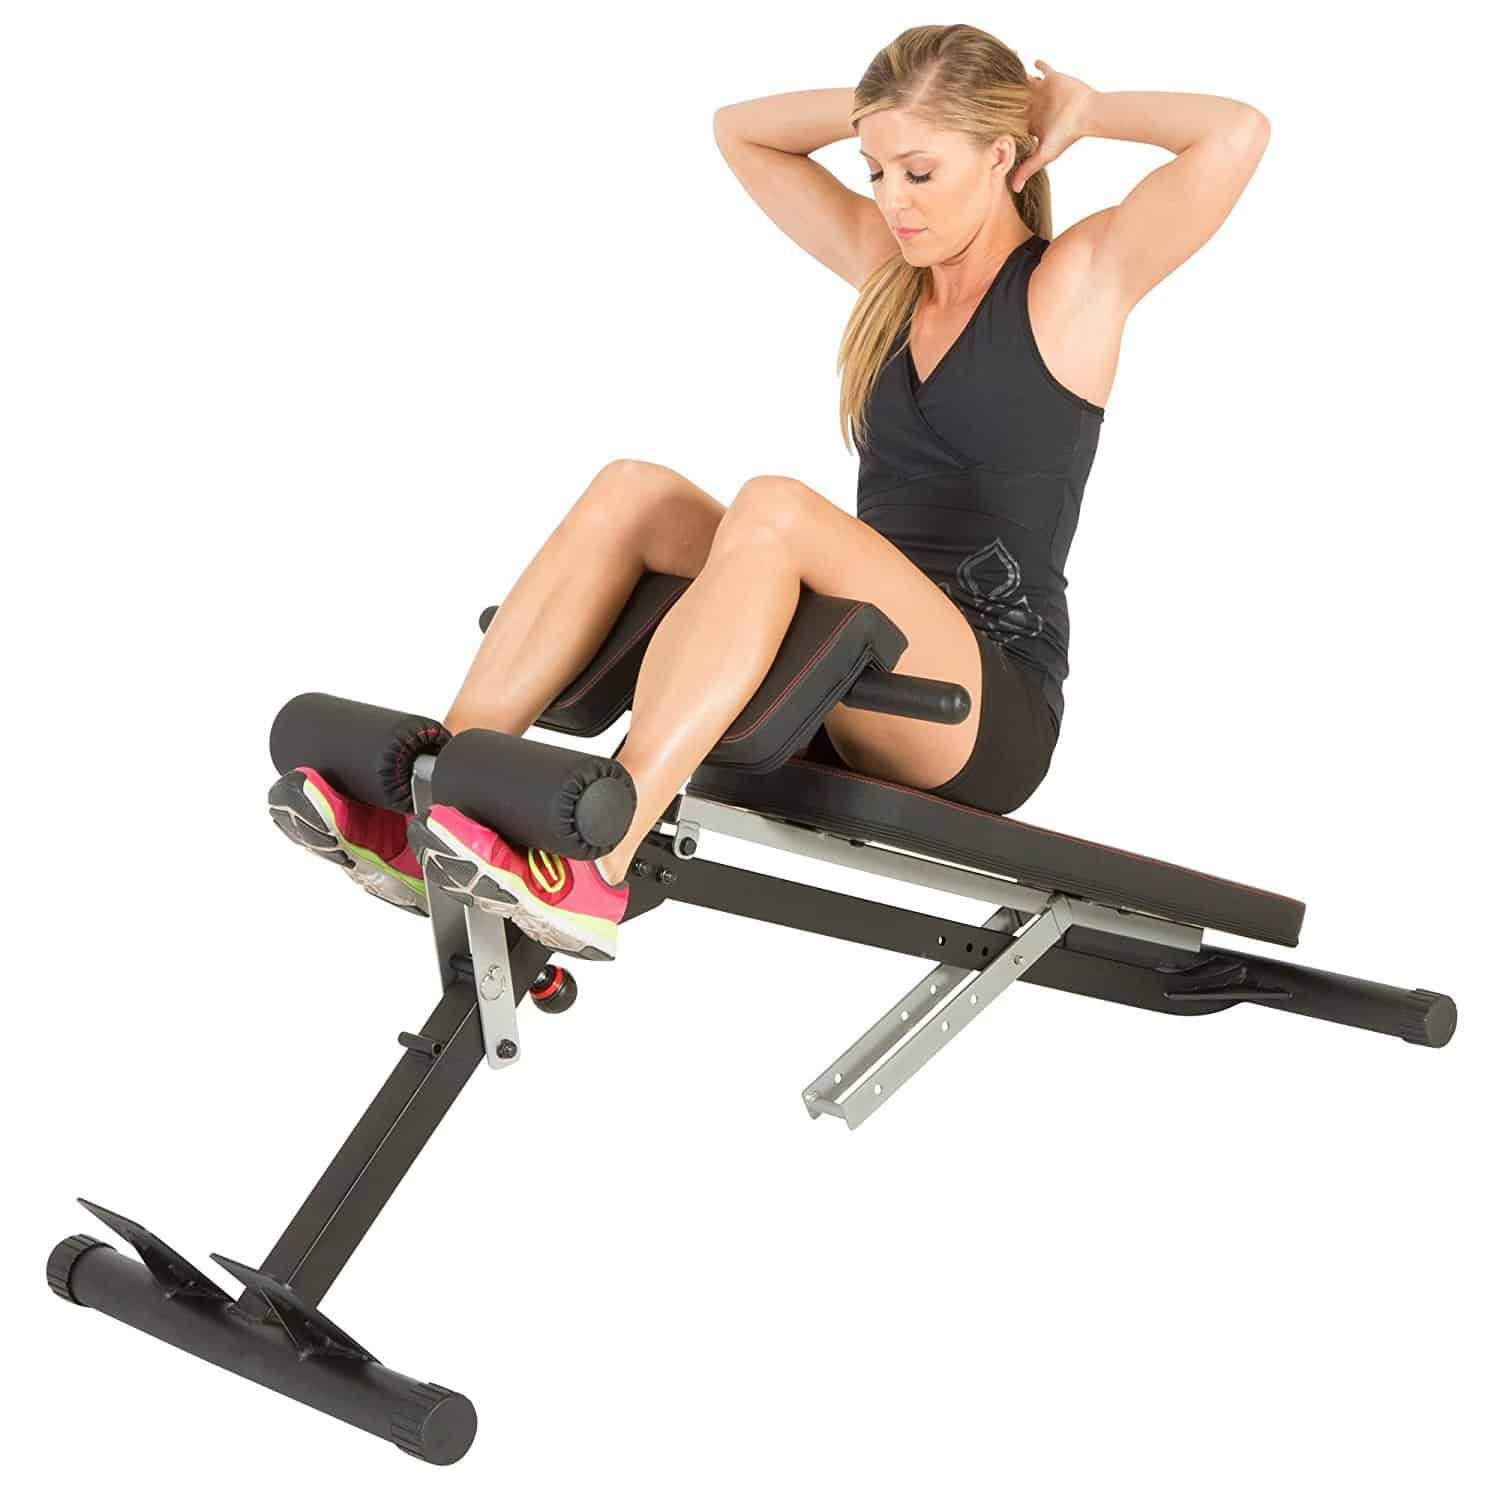 Tremendous 9 Best Sit Up Benches In 2019 Reviews Buying Guide For Short Links Chair Design For Home Short Linksinfo